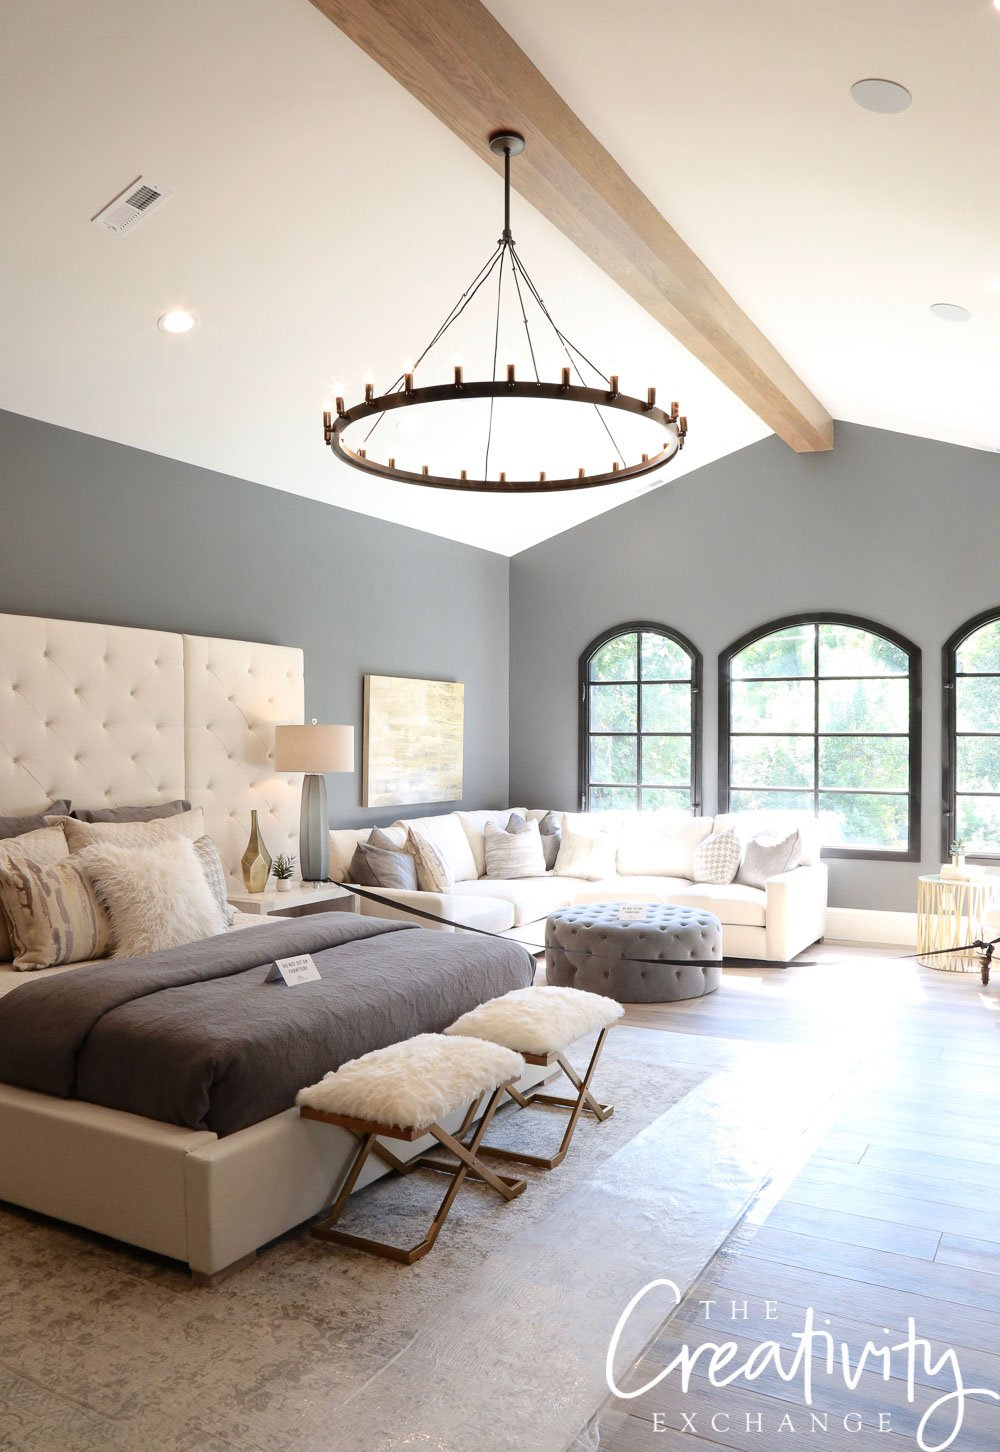 Wall Color is Benjamin Moore Trout Gray